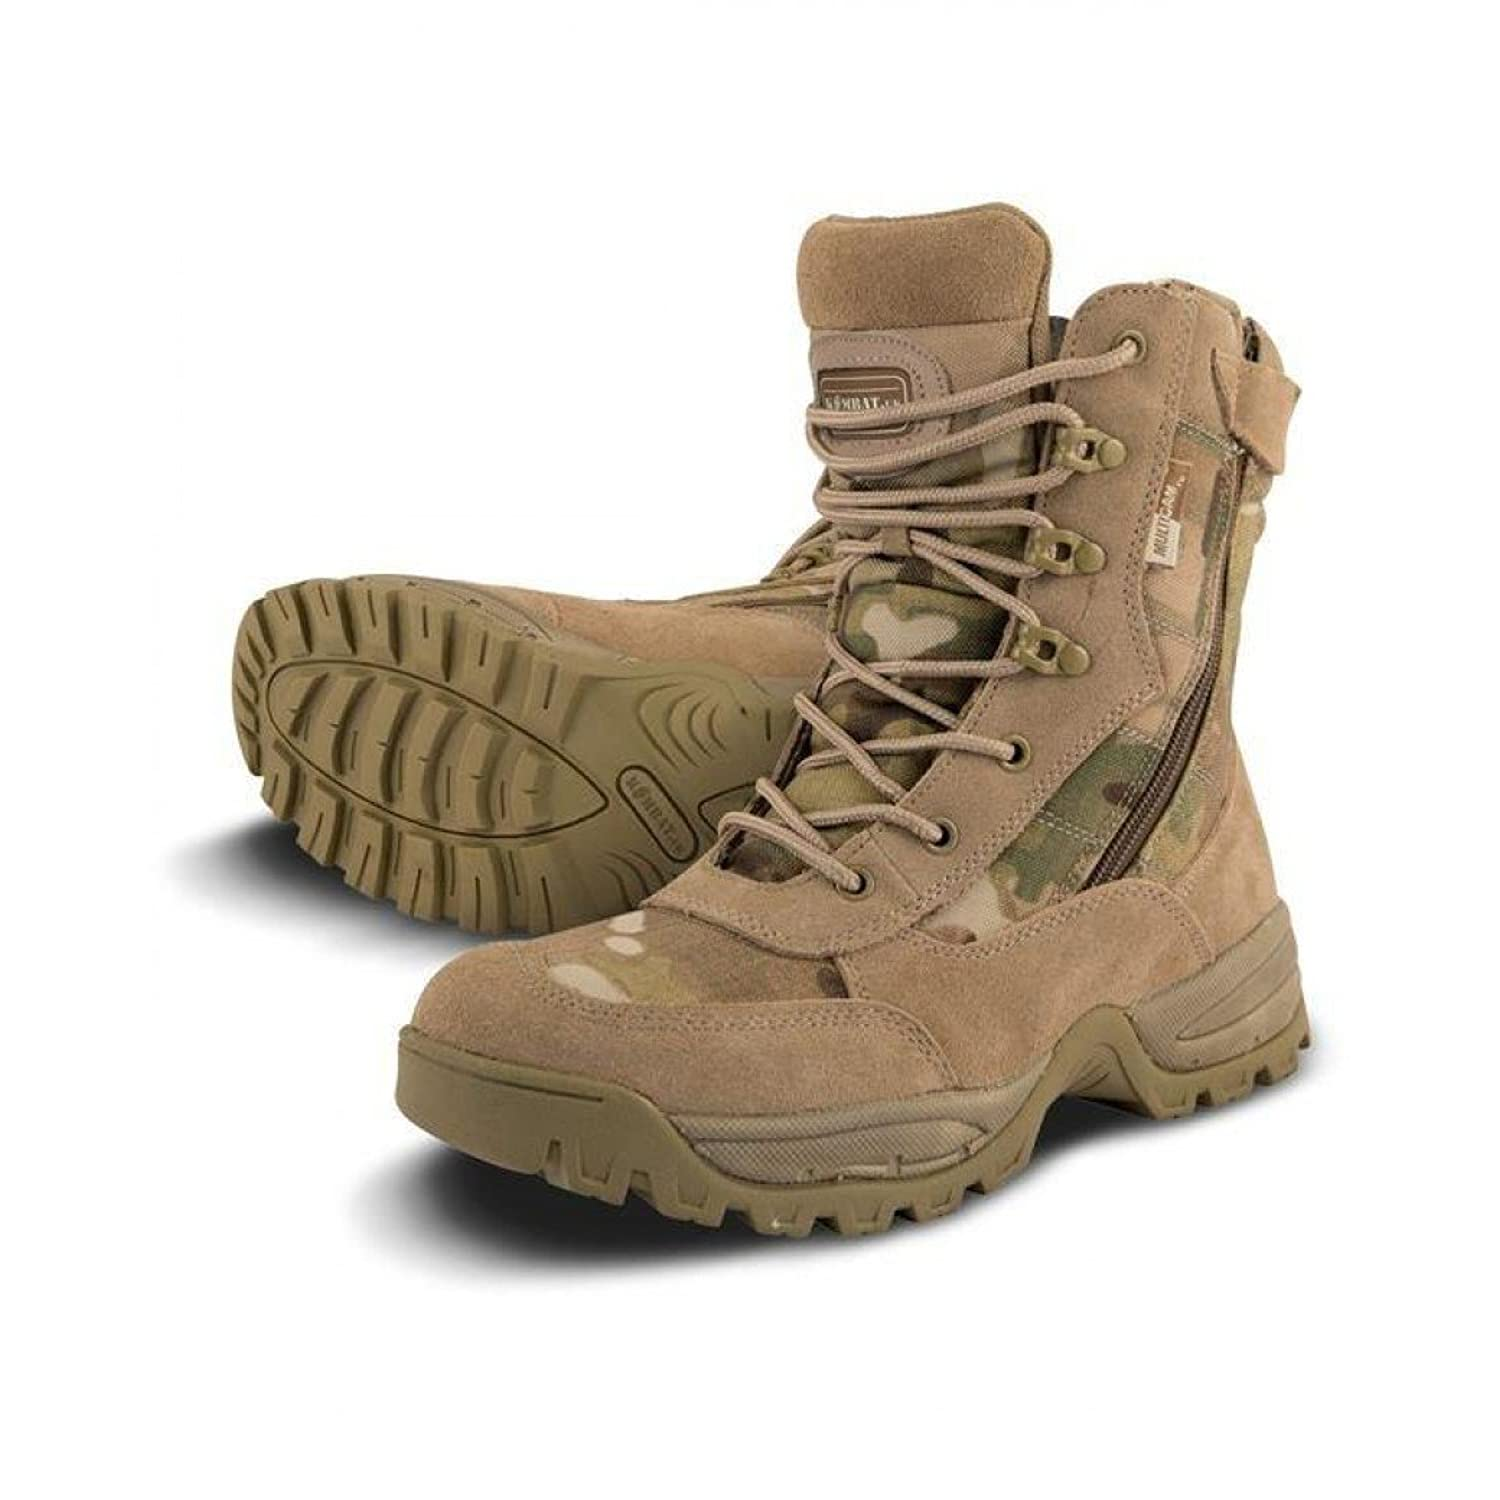 Mens Combat Military Army Camo Patrol Hiking Cadet Work Multicam Recon Special  Forces Boot 4-12: Amazon.co.uk: Shoes & Bags